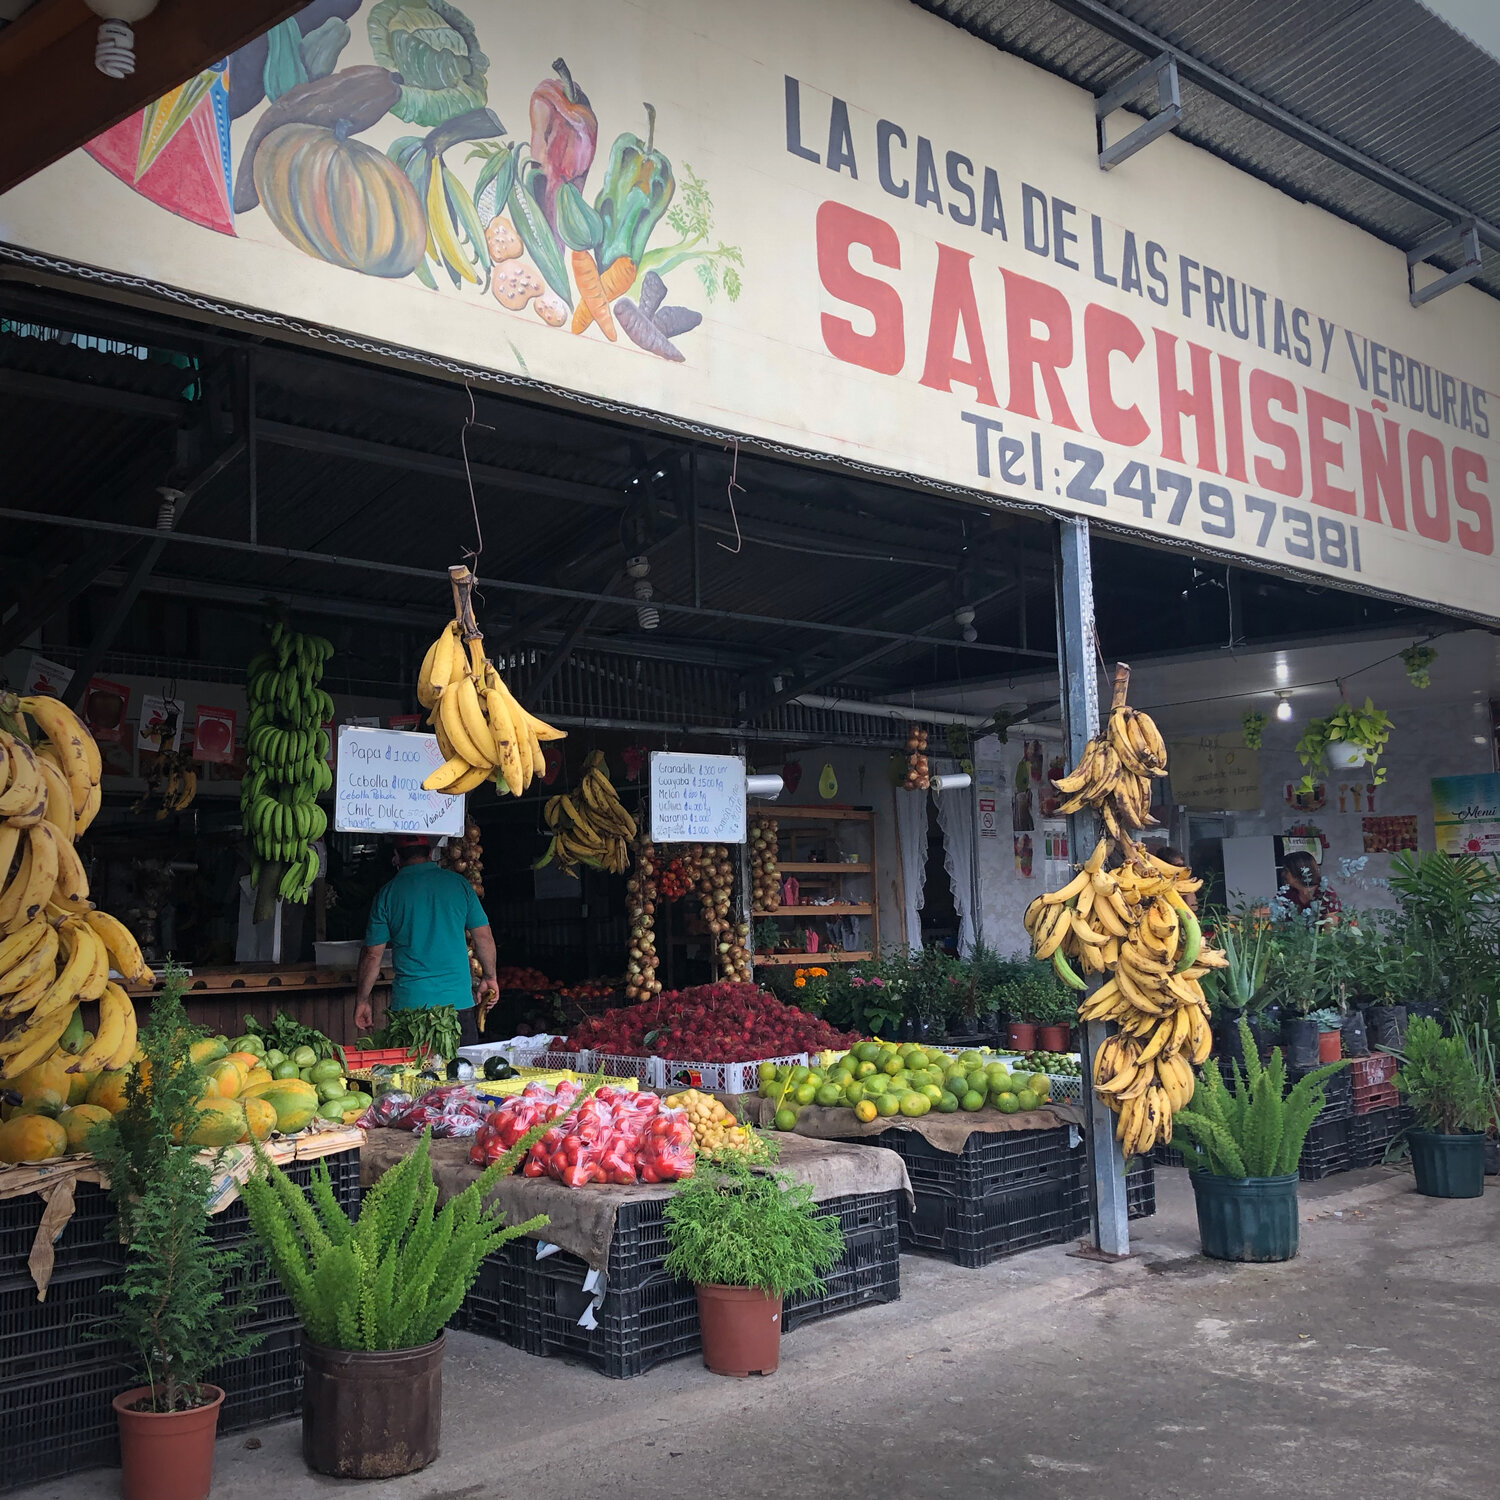 Experience the flavors of locally grown produce, coffee, and chocolate from the local markets